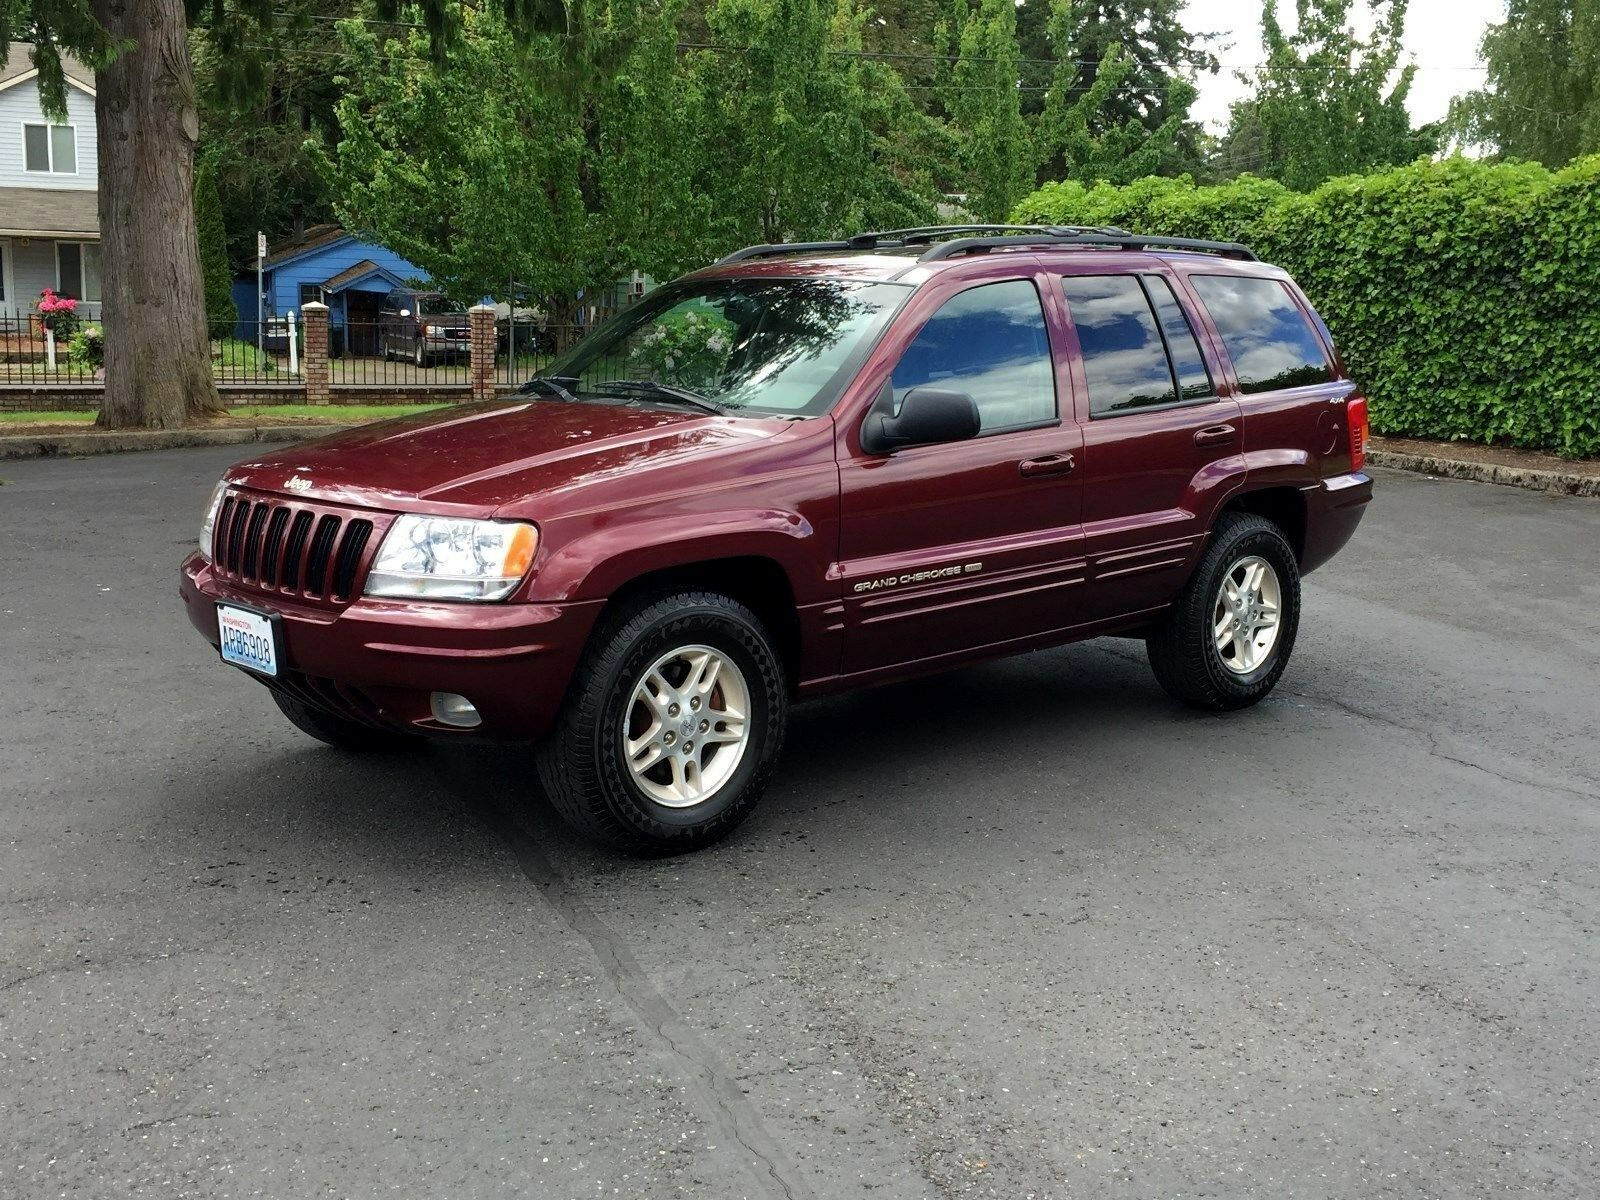 1999 Jeep Cherokee Limited 1999 Jeep Cherokee Limited 4x4 4.0L 6'Cyl 50K ORIGINAL MILES! Beautiful Like New